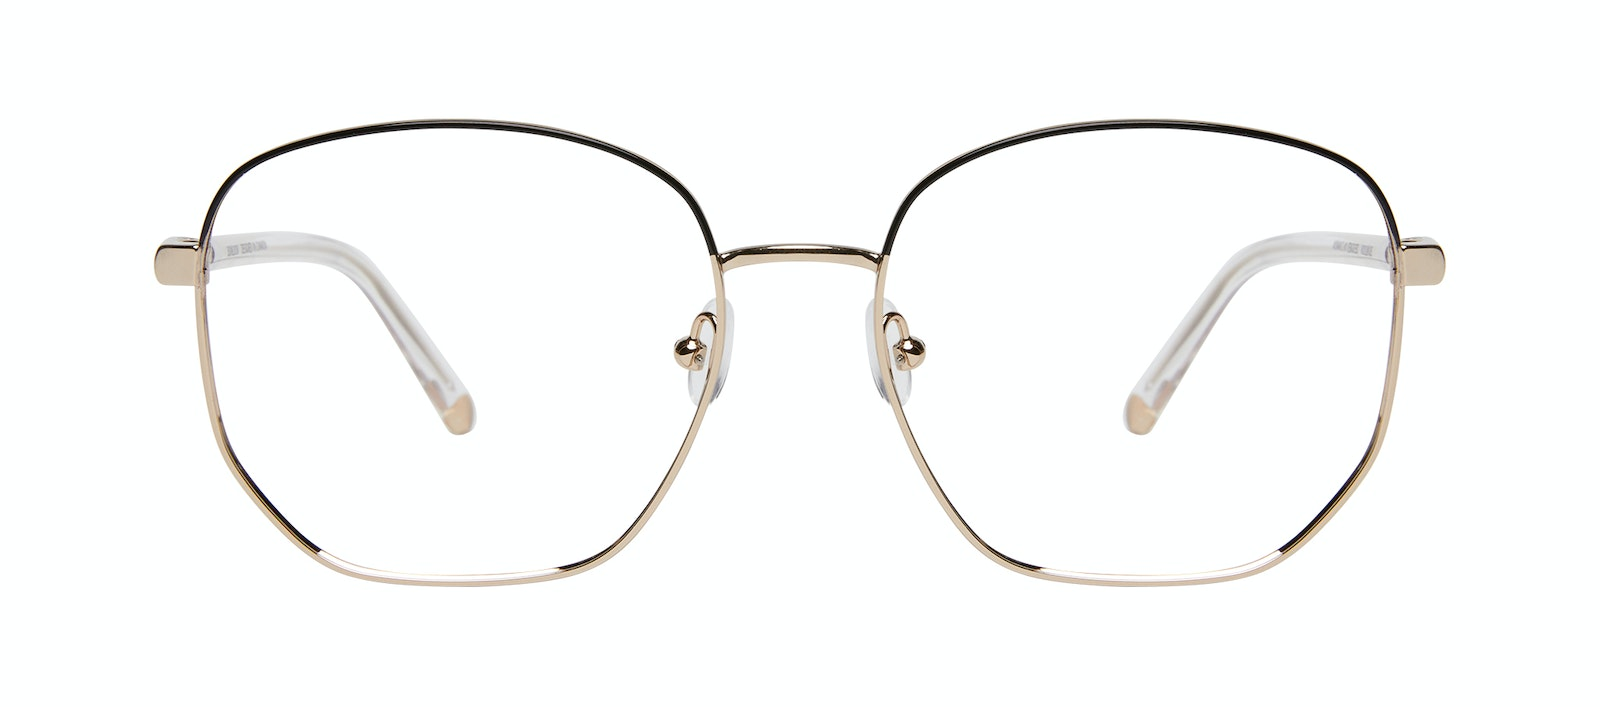 Affordable Fashion Glasses Round Eyeglasses Women Laïka Deep Gold Front